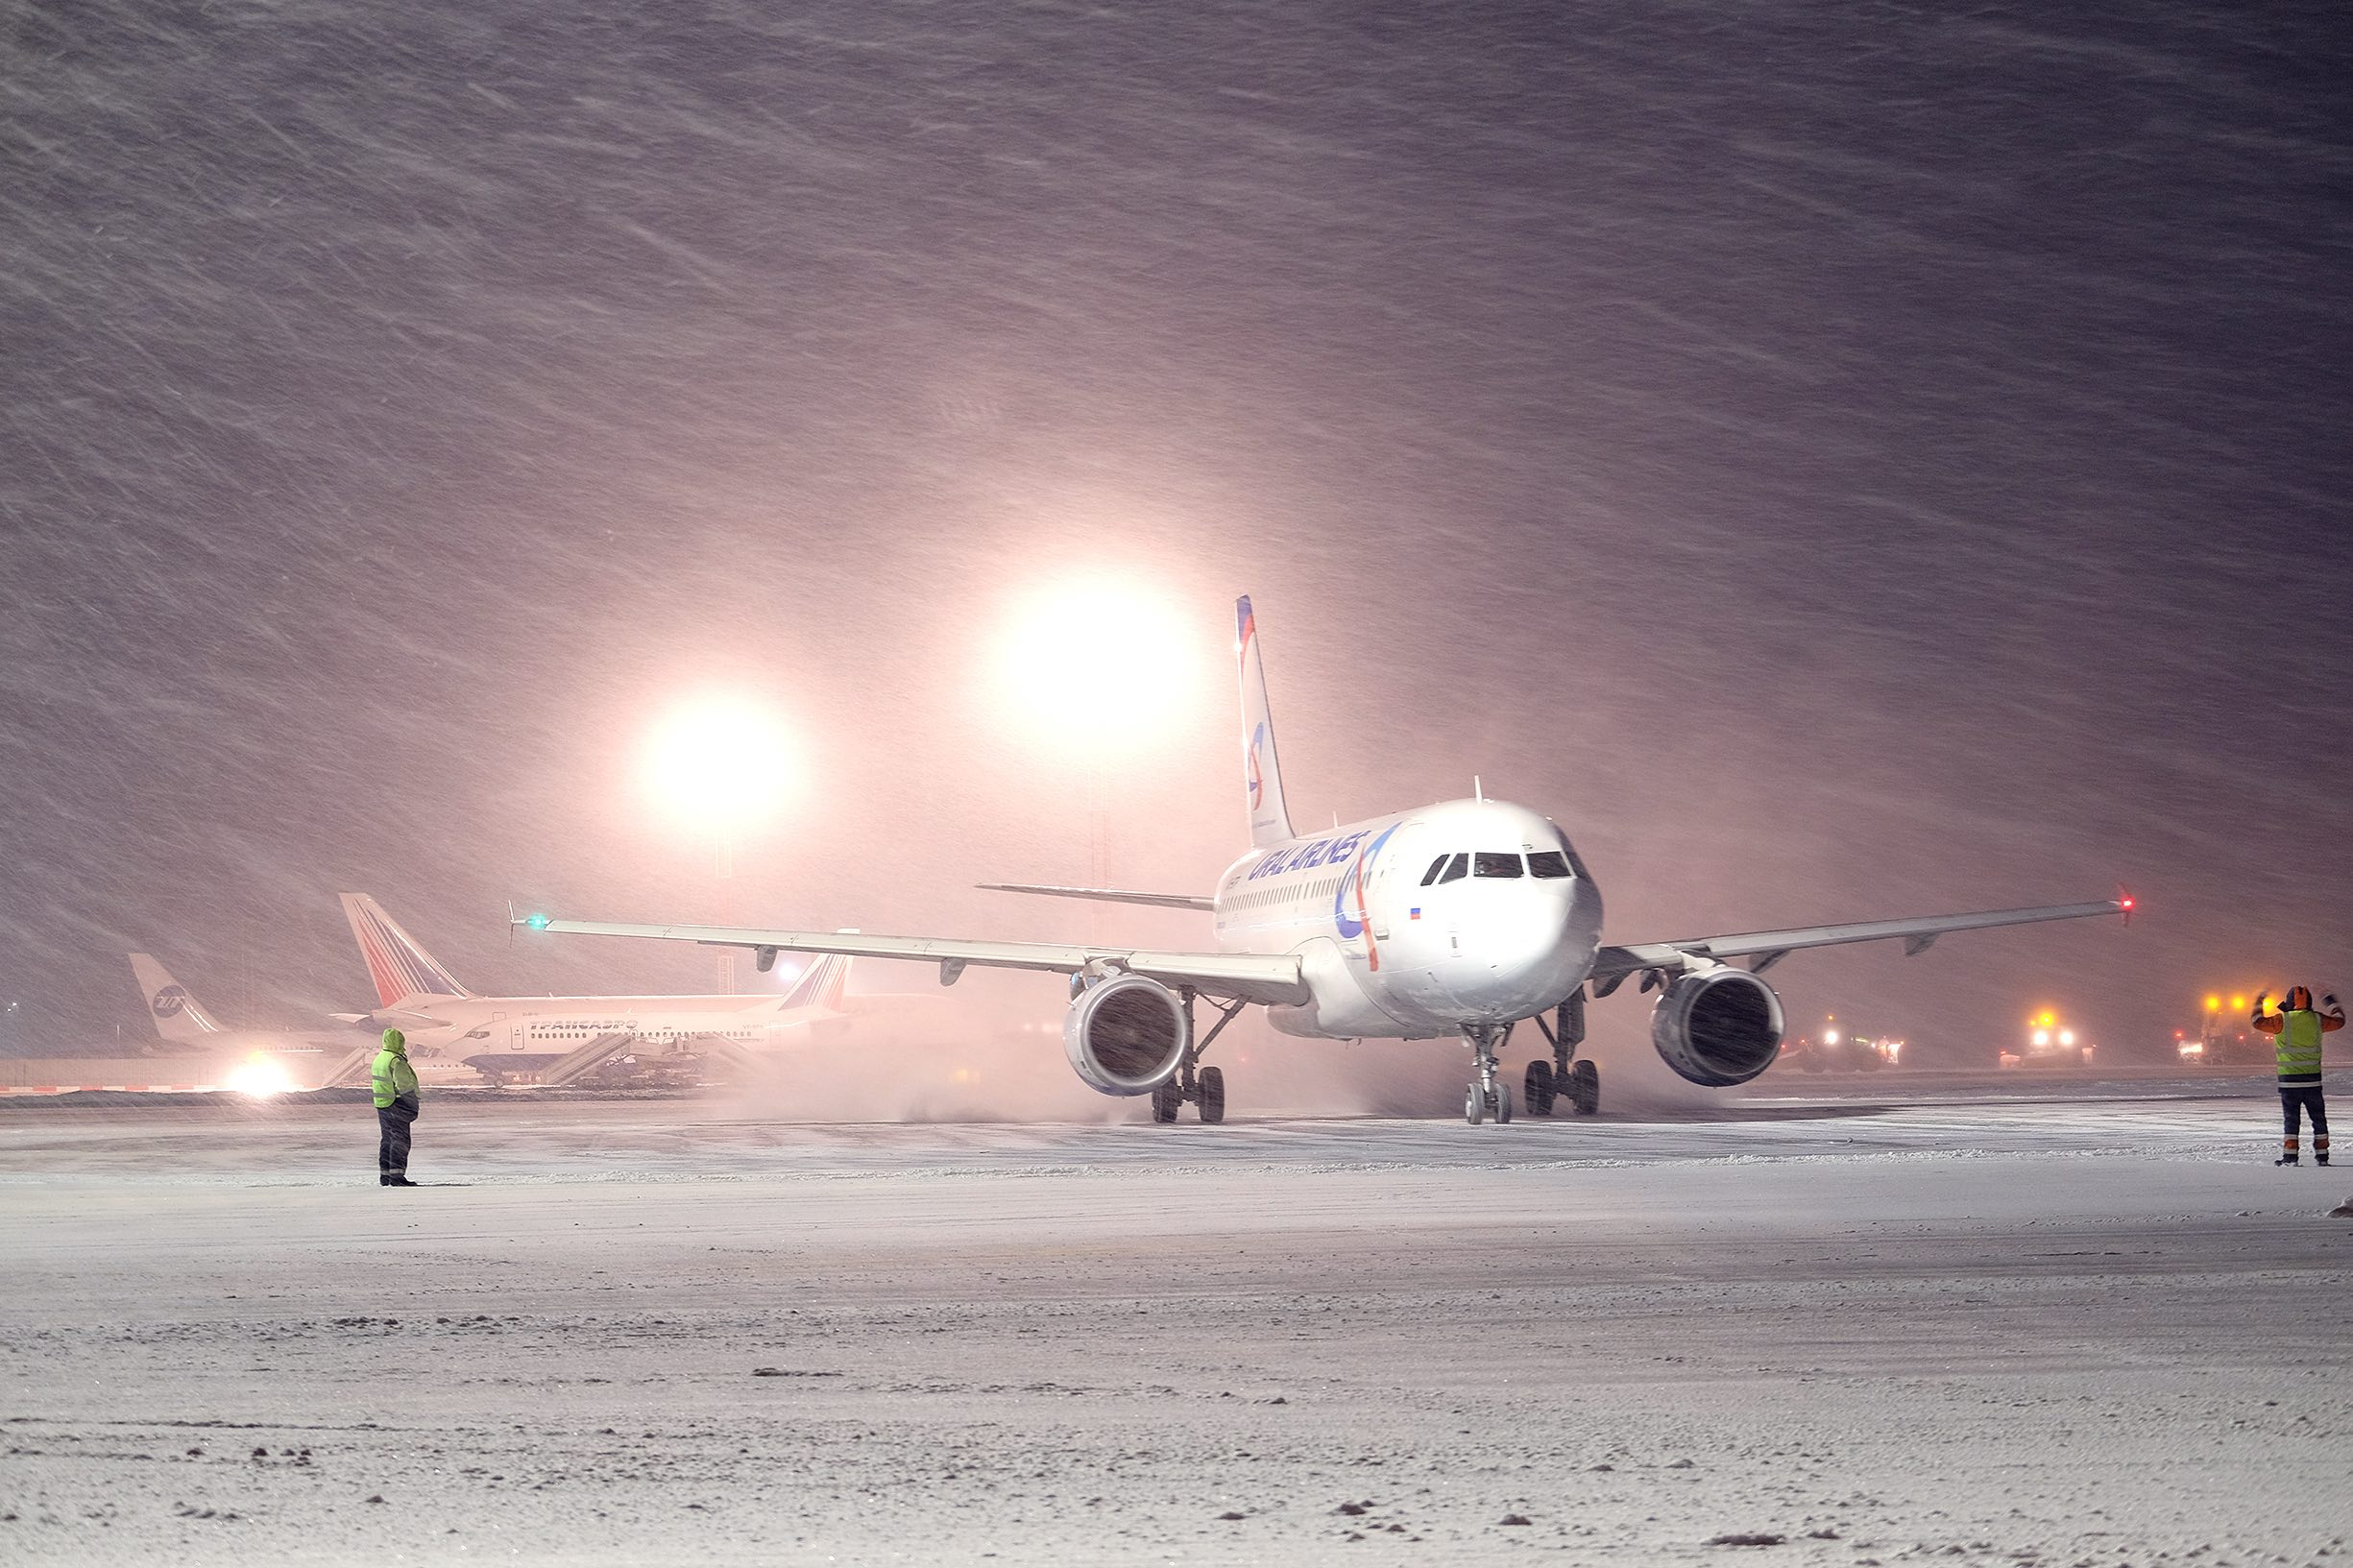 skybook advanced weather forecasting explained. The image shows a fleet of aircraft in extreme snow and ice conditions